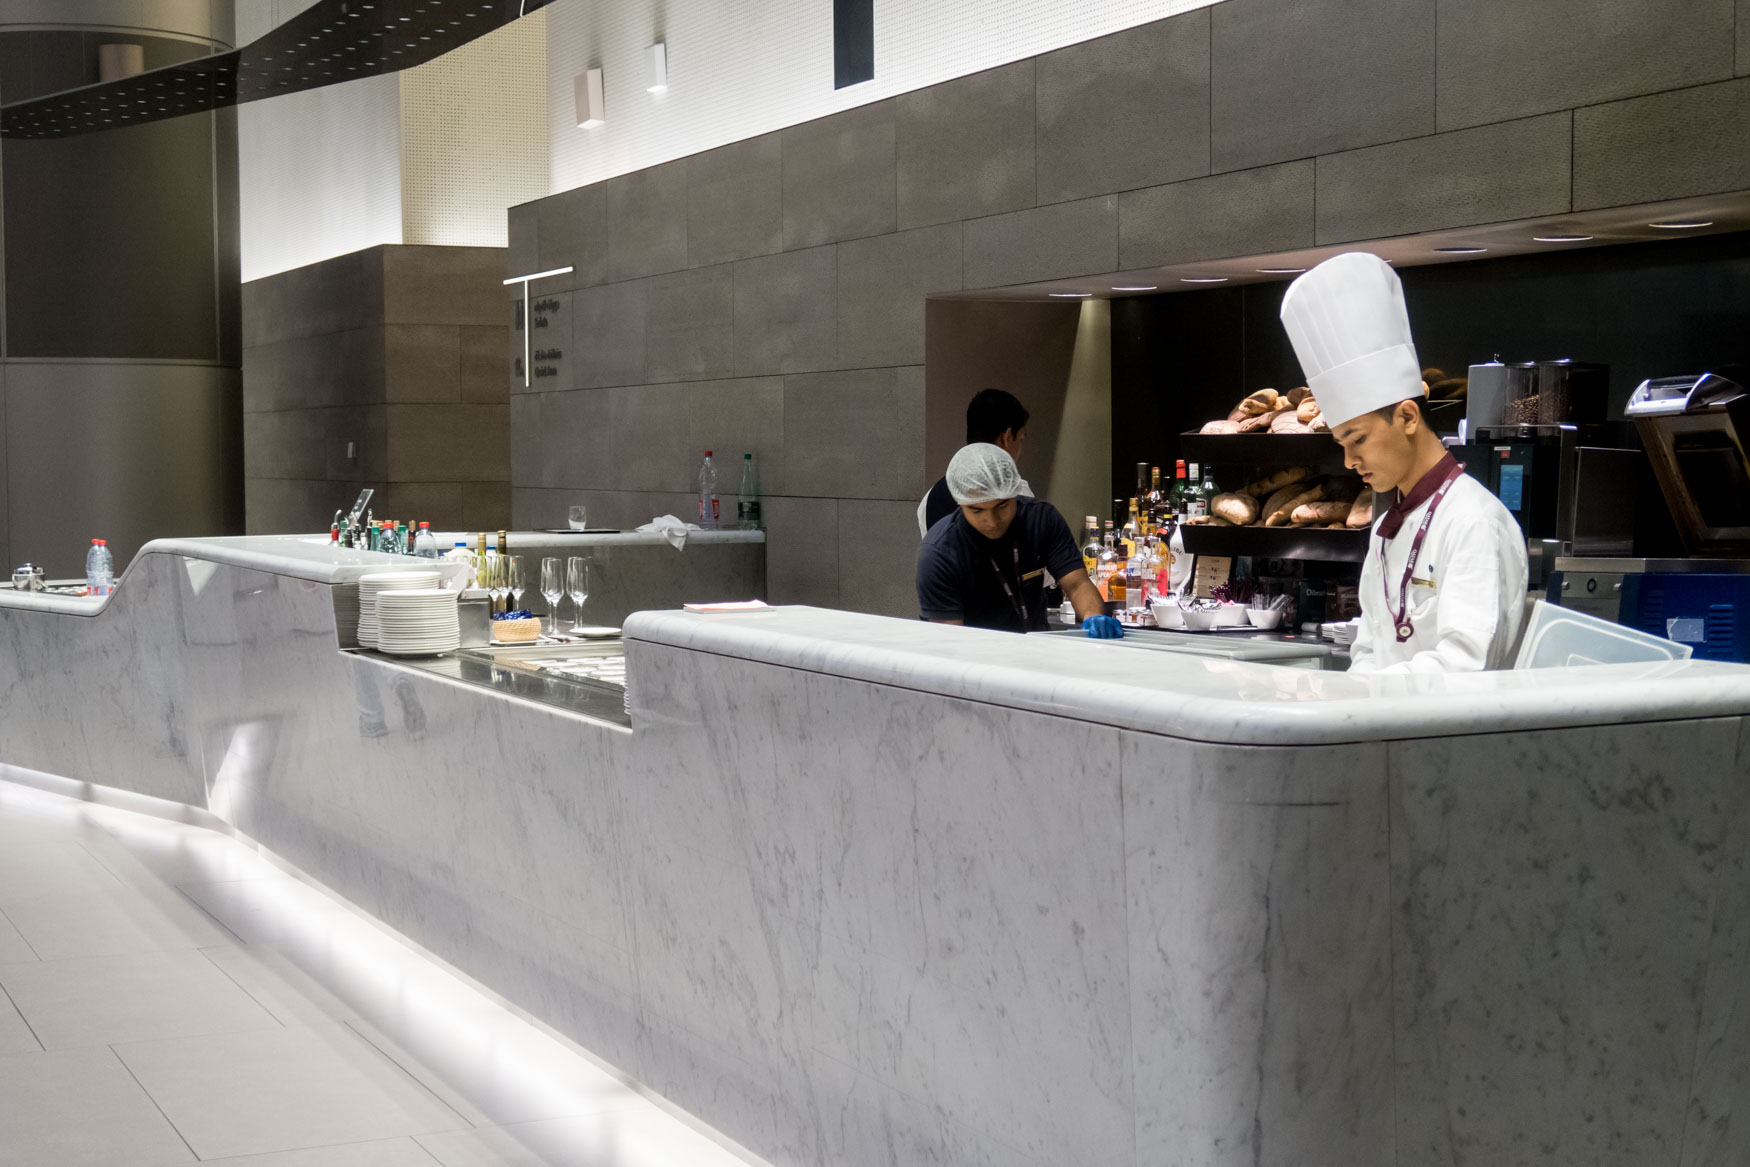 Qatar Airways Al Mourjan Lounge A La Carte Sandwiches